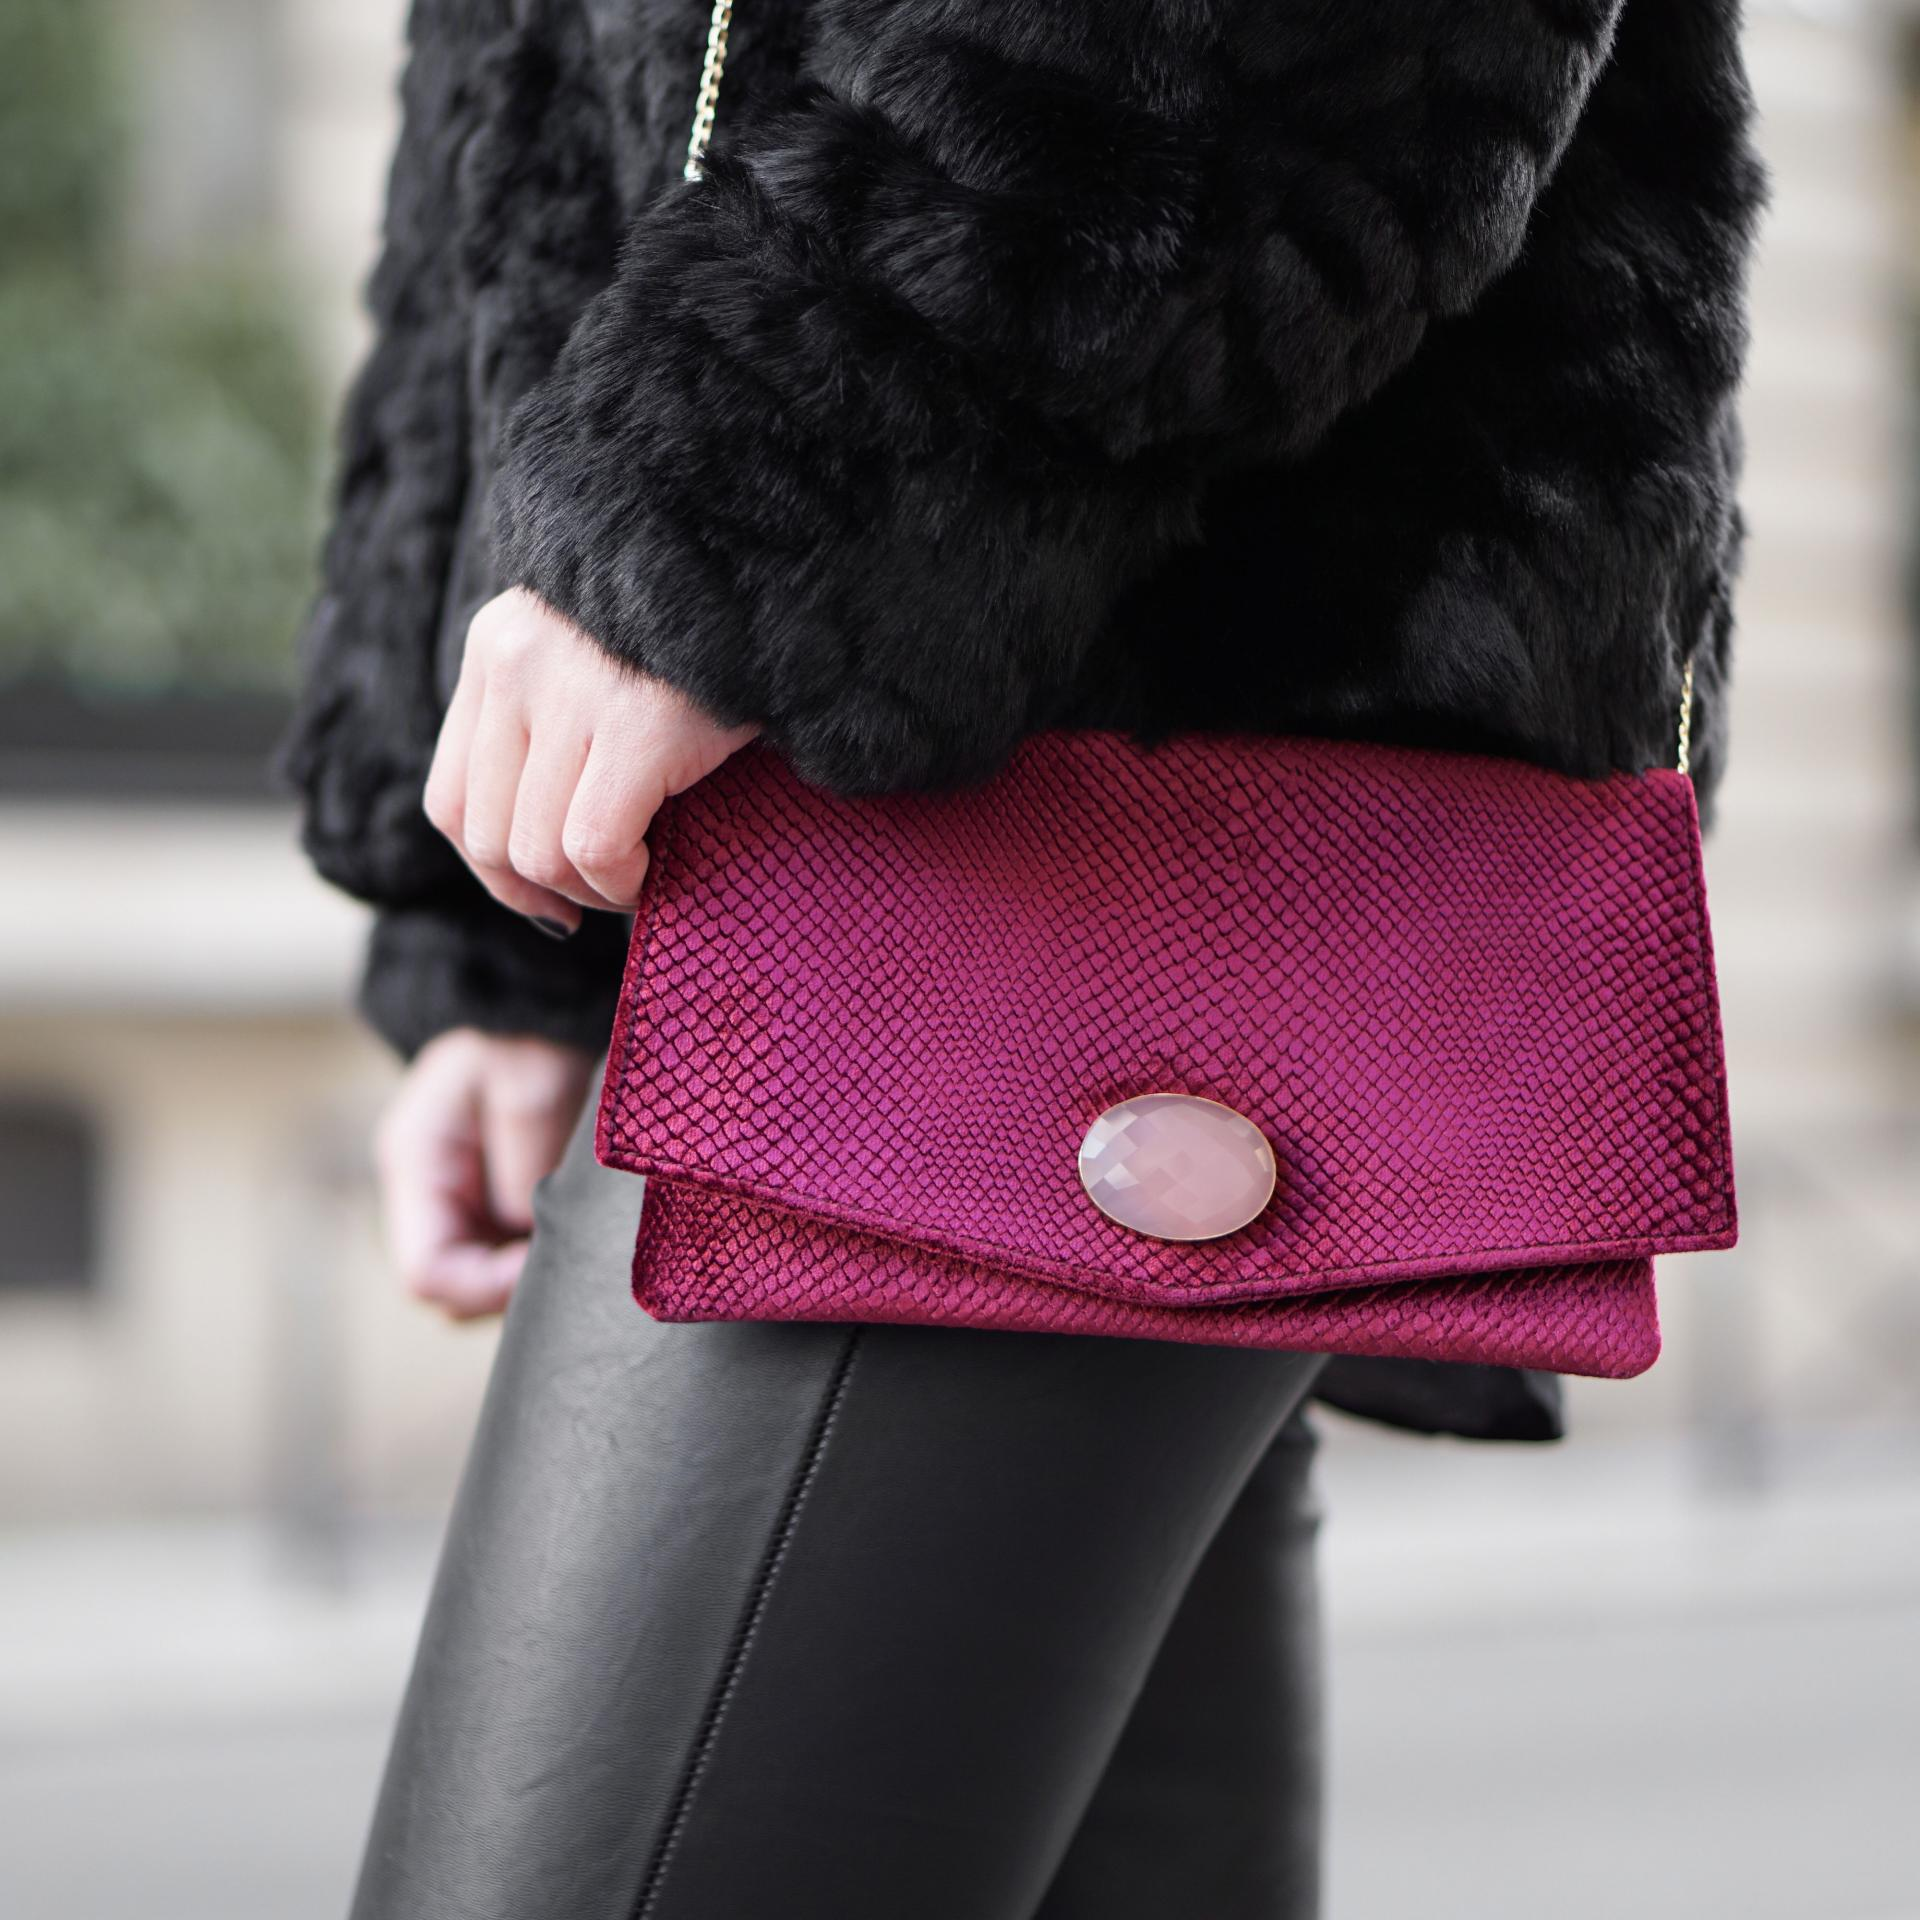 sestra paris clutch at galeries lafayette